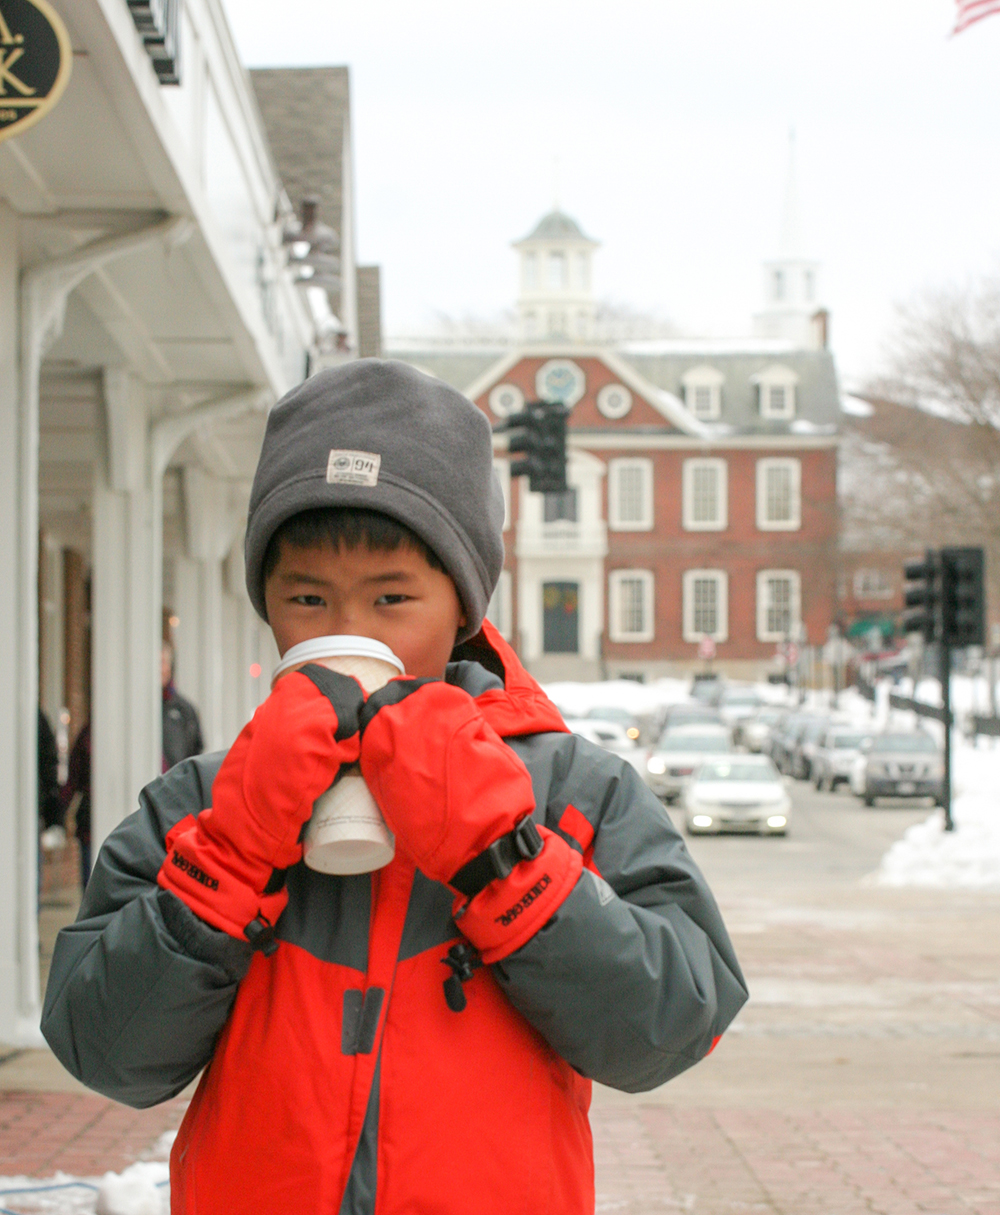 Child_Newport Winter Festival_The Chanler.jpg